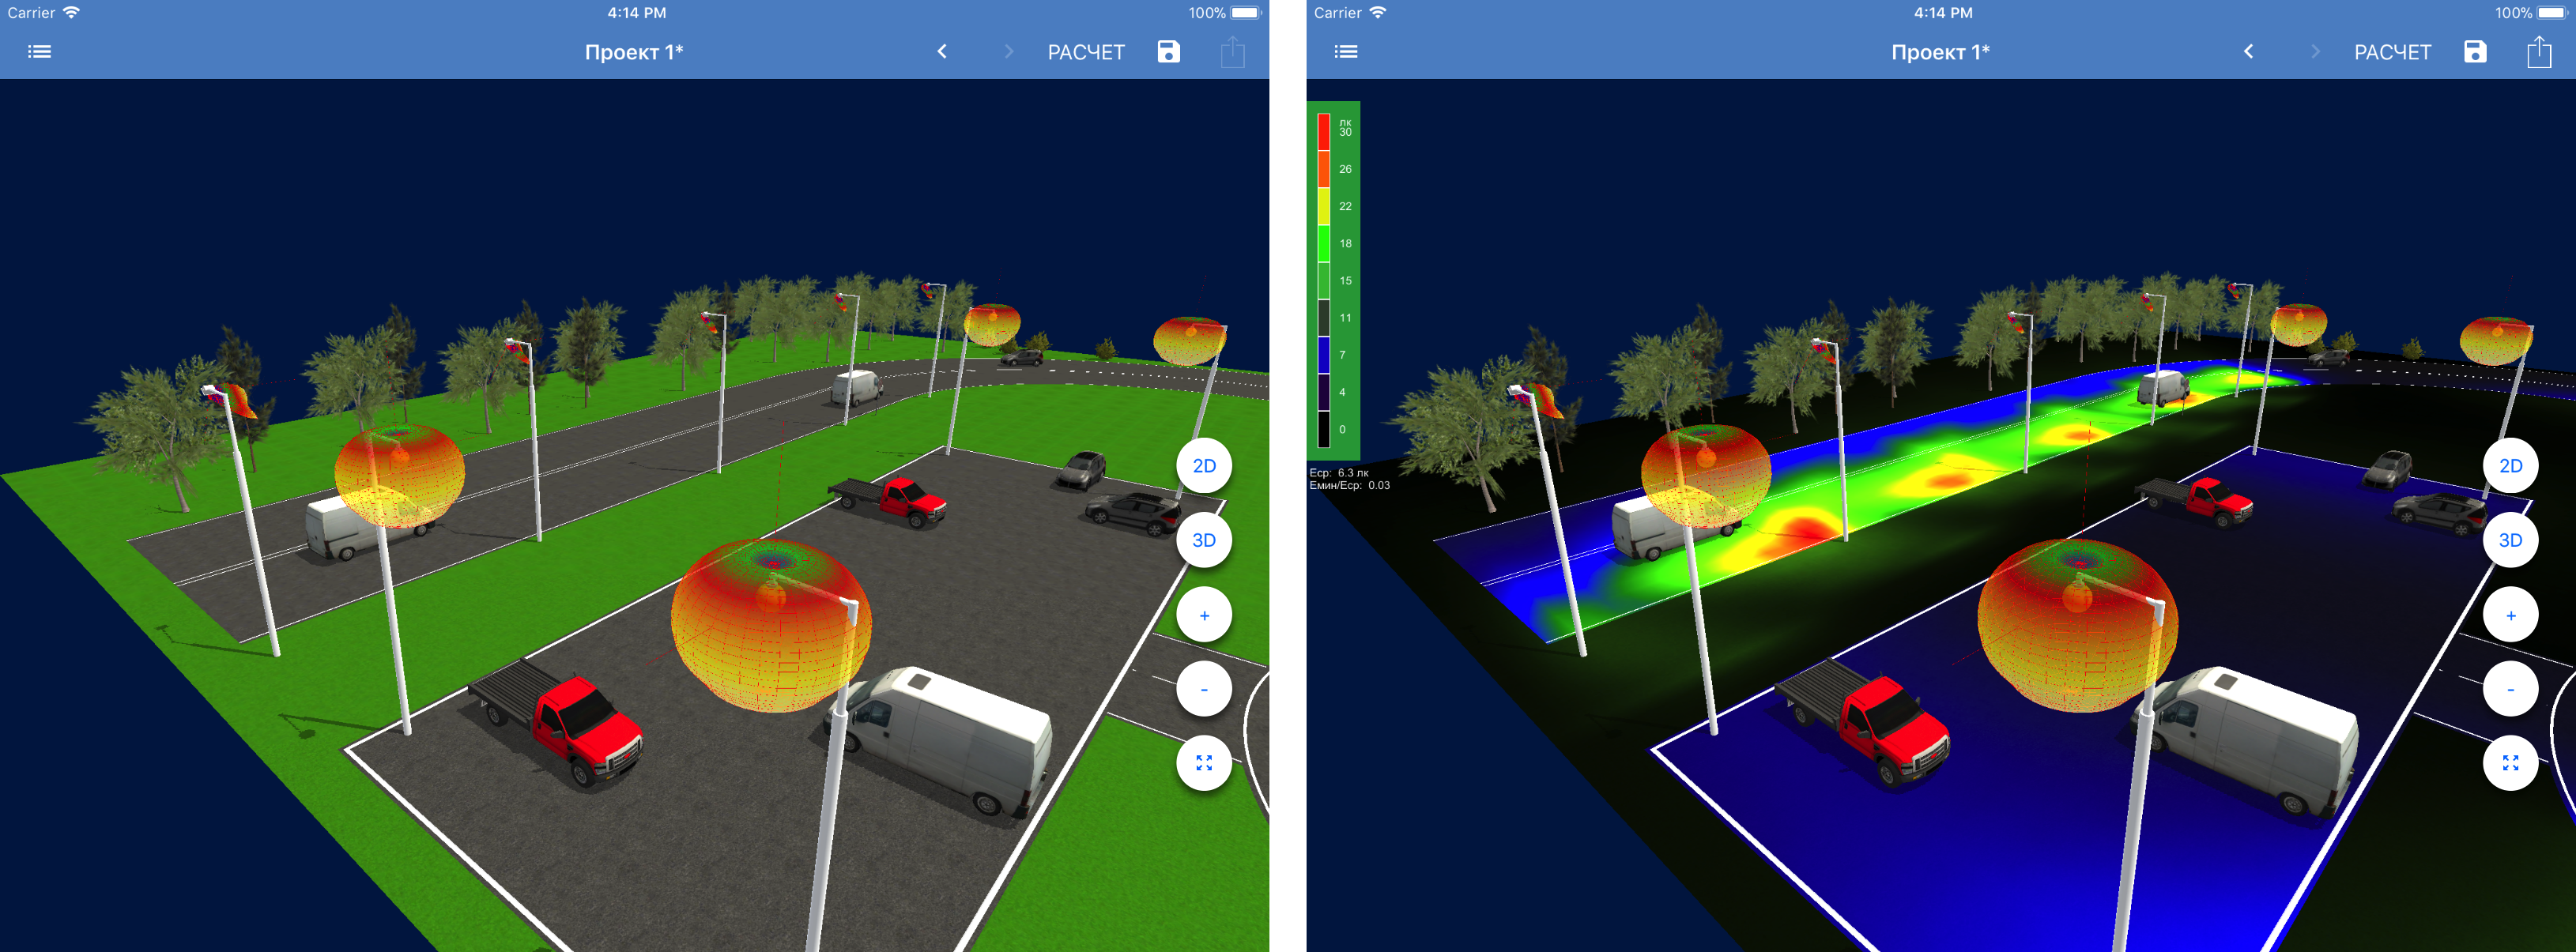 Using Unity3D in a native iOS /Android application for modeling the lighting of open spaces